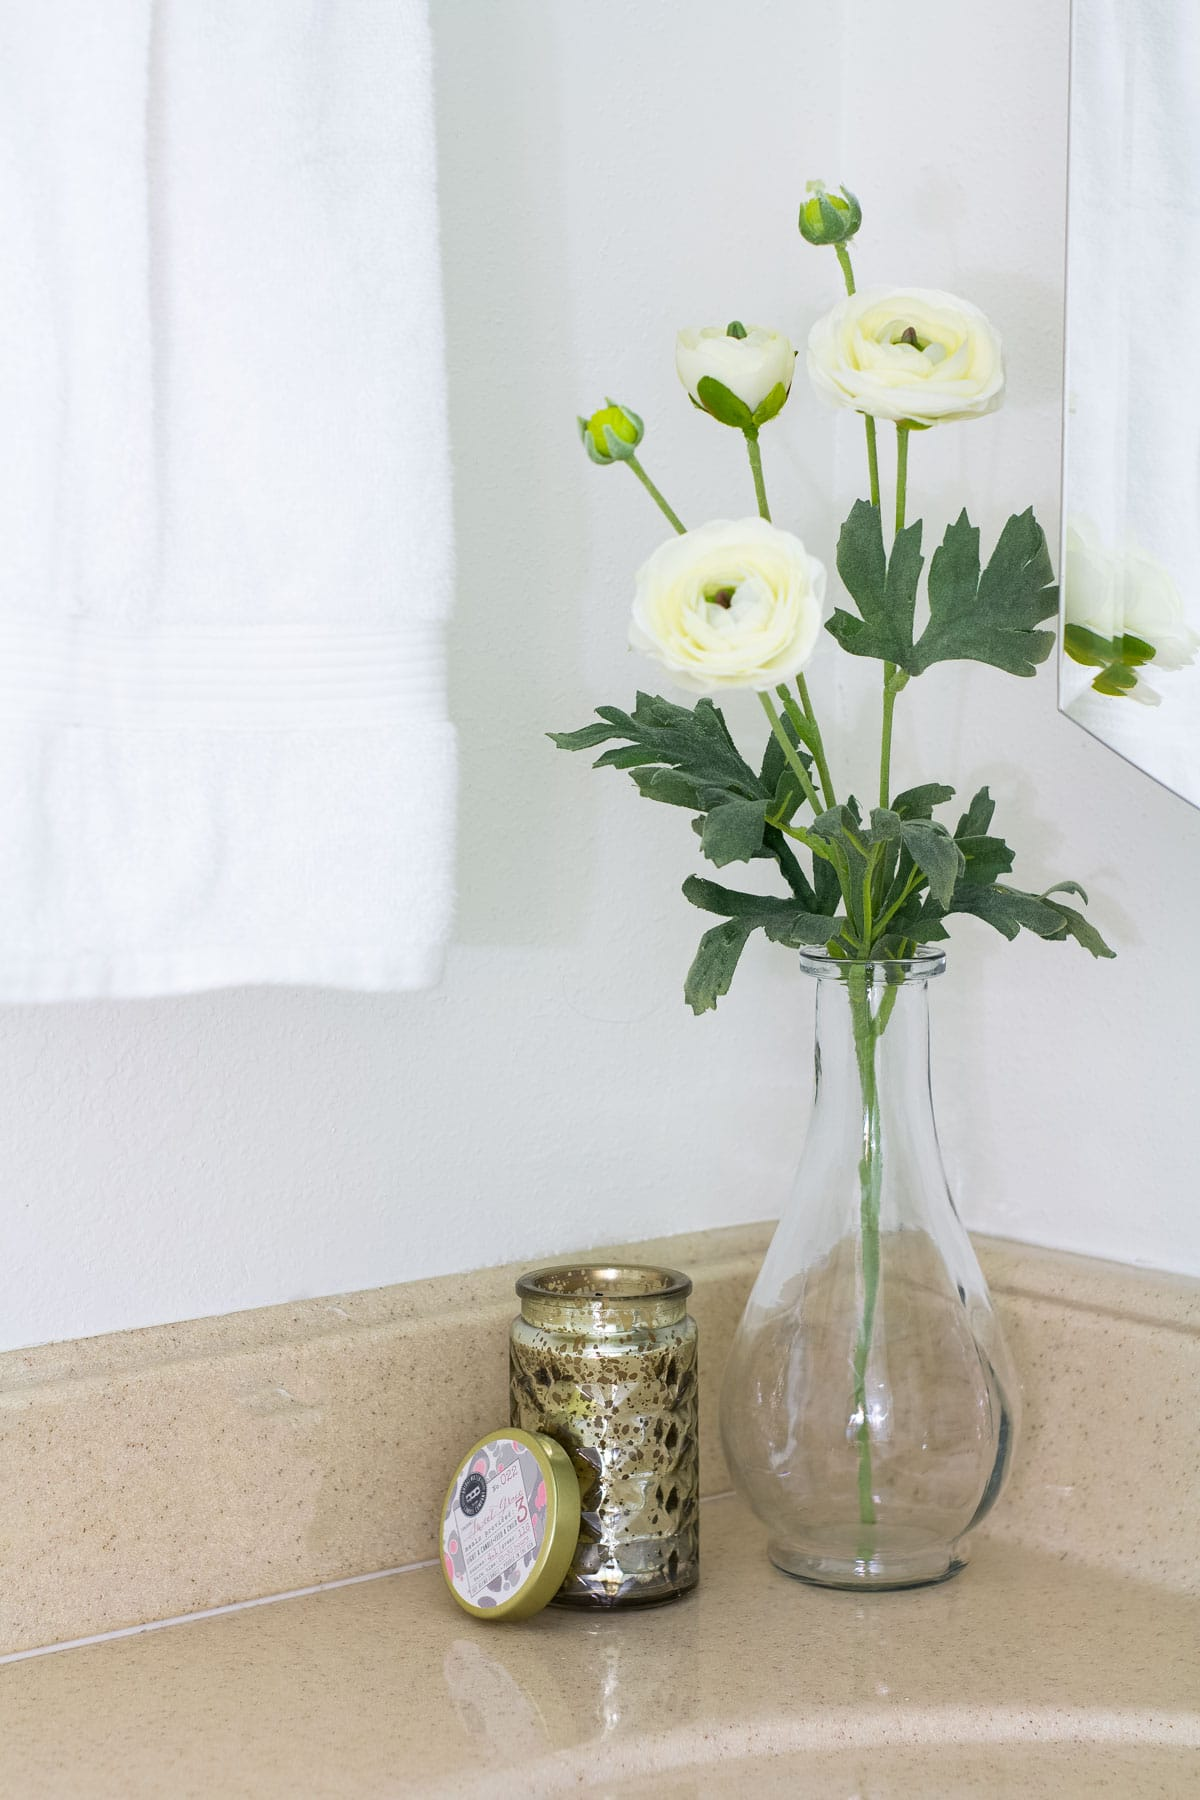 flowers in a vase with a candle on a bathroom counter